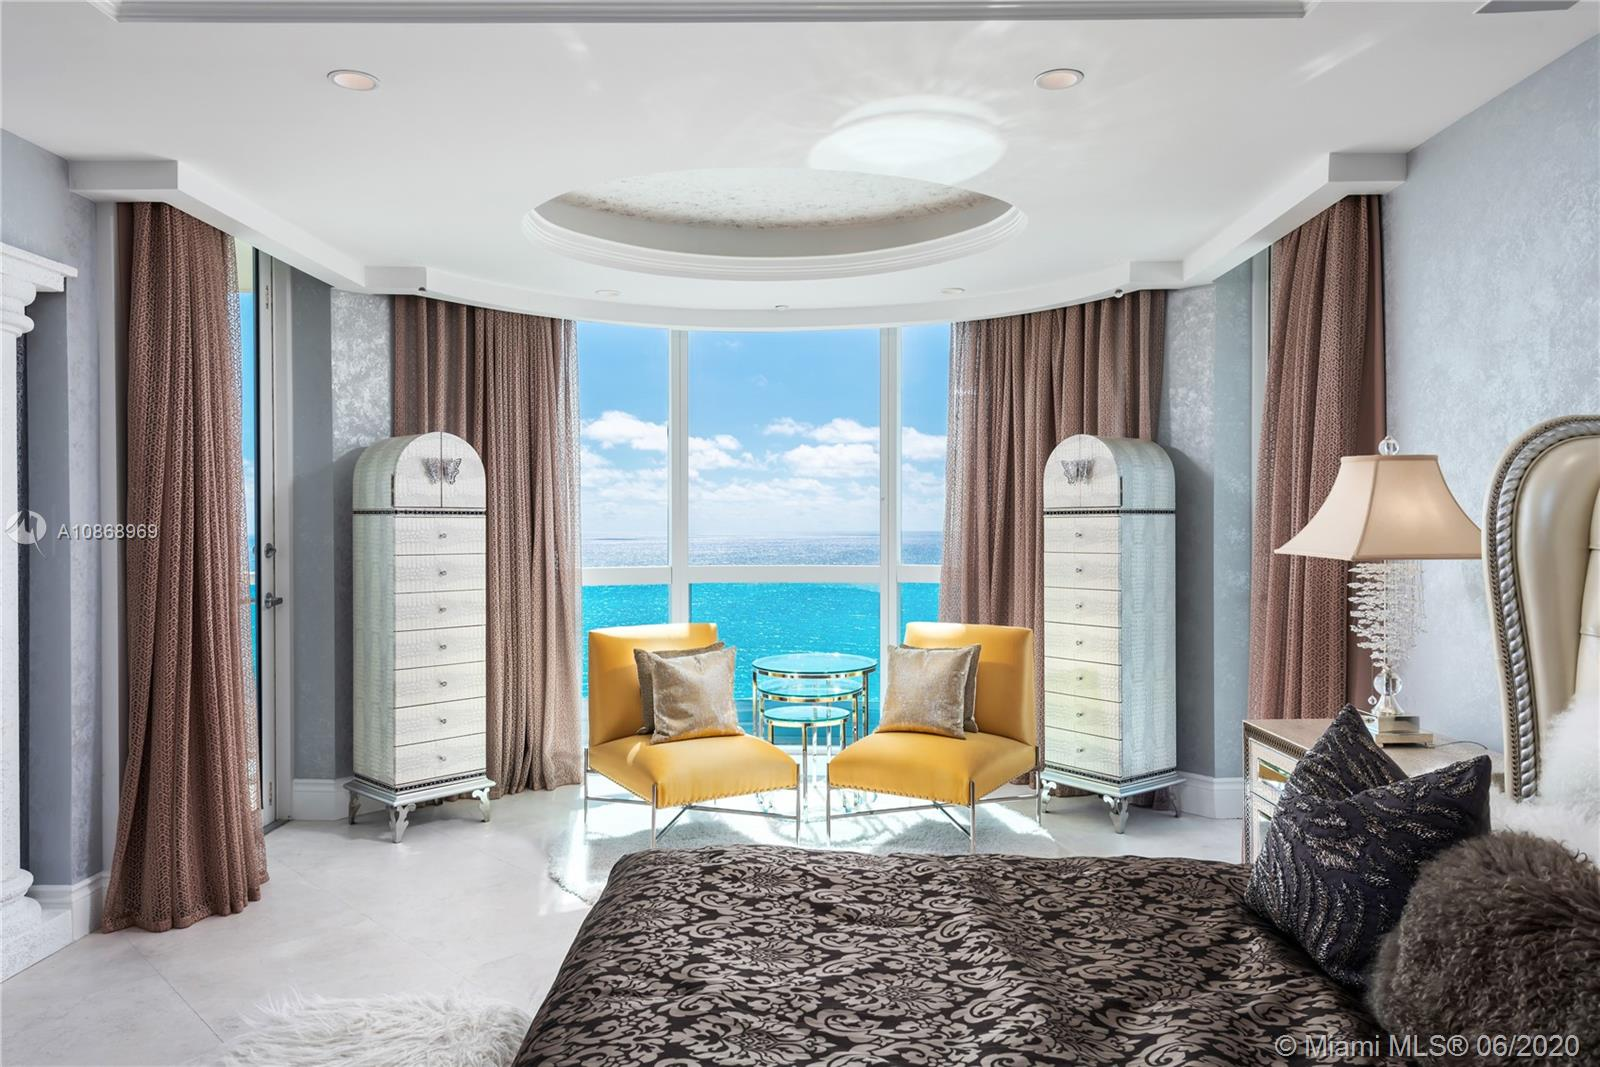 5025 Collins Ave, Unit #Penthouse East Luxury Real Estate